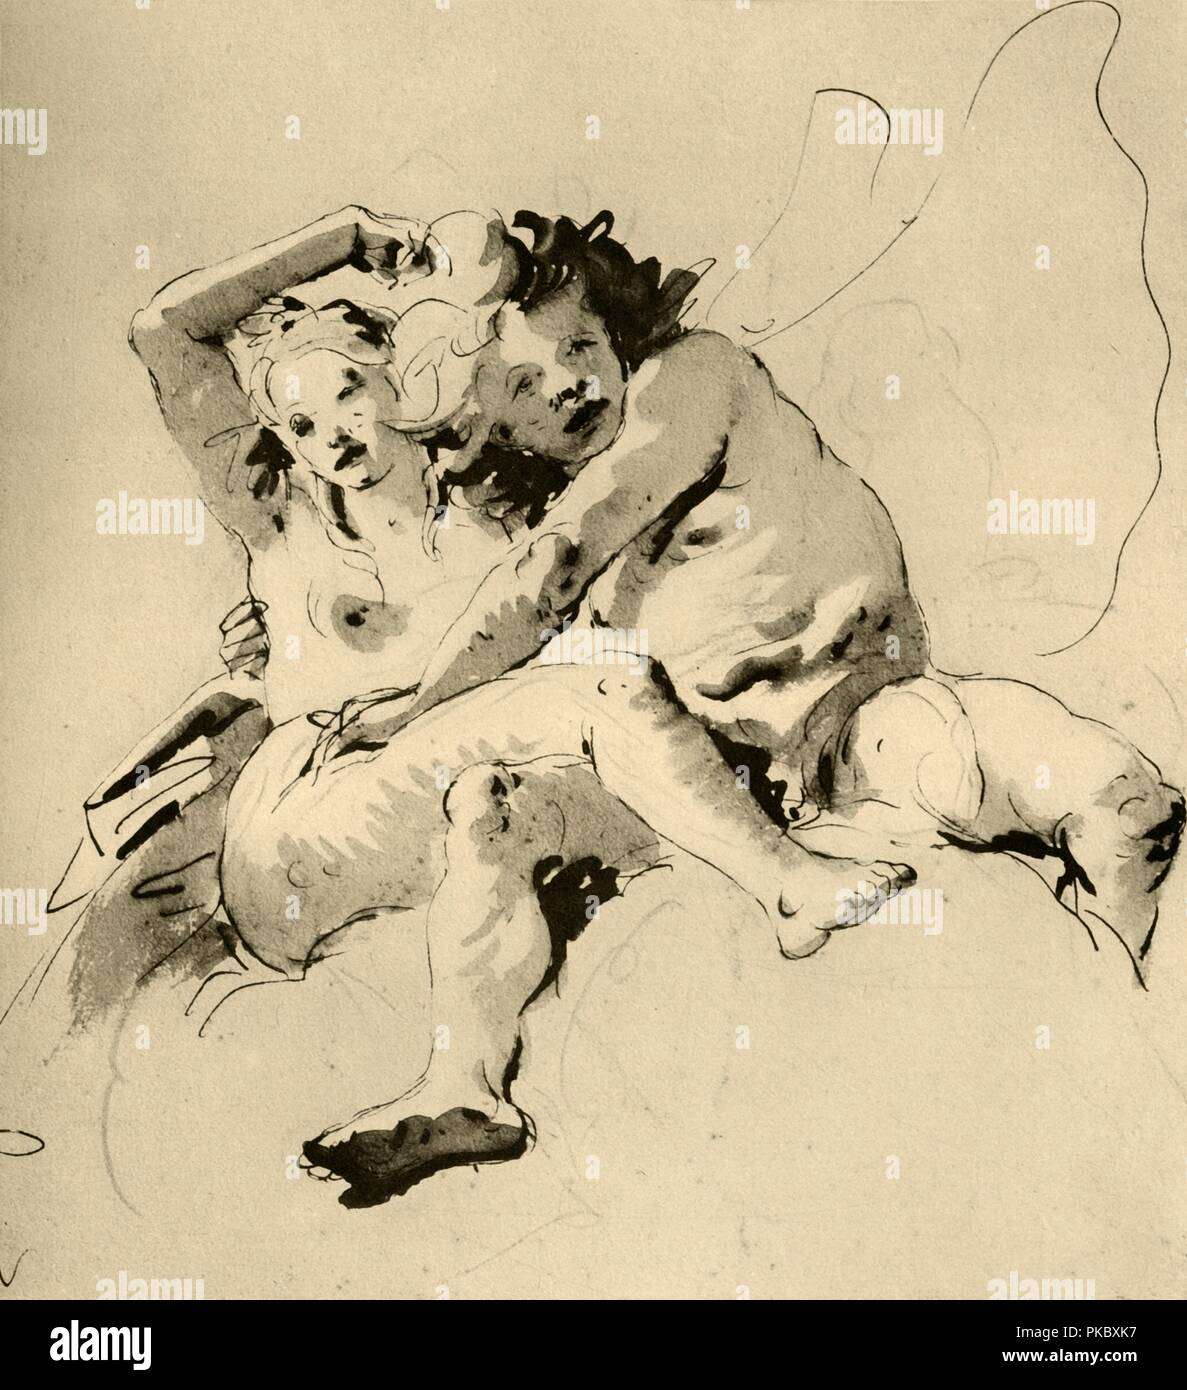 'Zephyr and Flora', (1928). Pen with wash on white paper. At one time known to have been in the collection of the late Professor W Bateson, London. Italian Venetian painter and printmaker Giovanni Battista Tiepolo (1696-1770), worked not only in Italy, but also in Germany and Spain. He was commissioned to carry out frescoes in churches and palaces, and was elected President of the Academy of Padua. As well as his large-scale majestic works, he also produced etchings and oil paintings, and is widely regarded as one of the most important artists of the period. Illustration from The Drawings of G - Stock Image